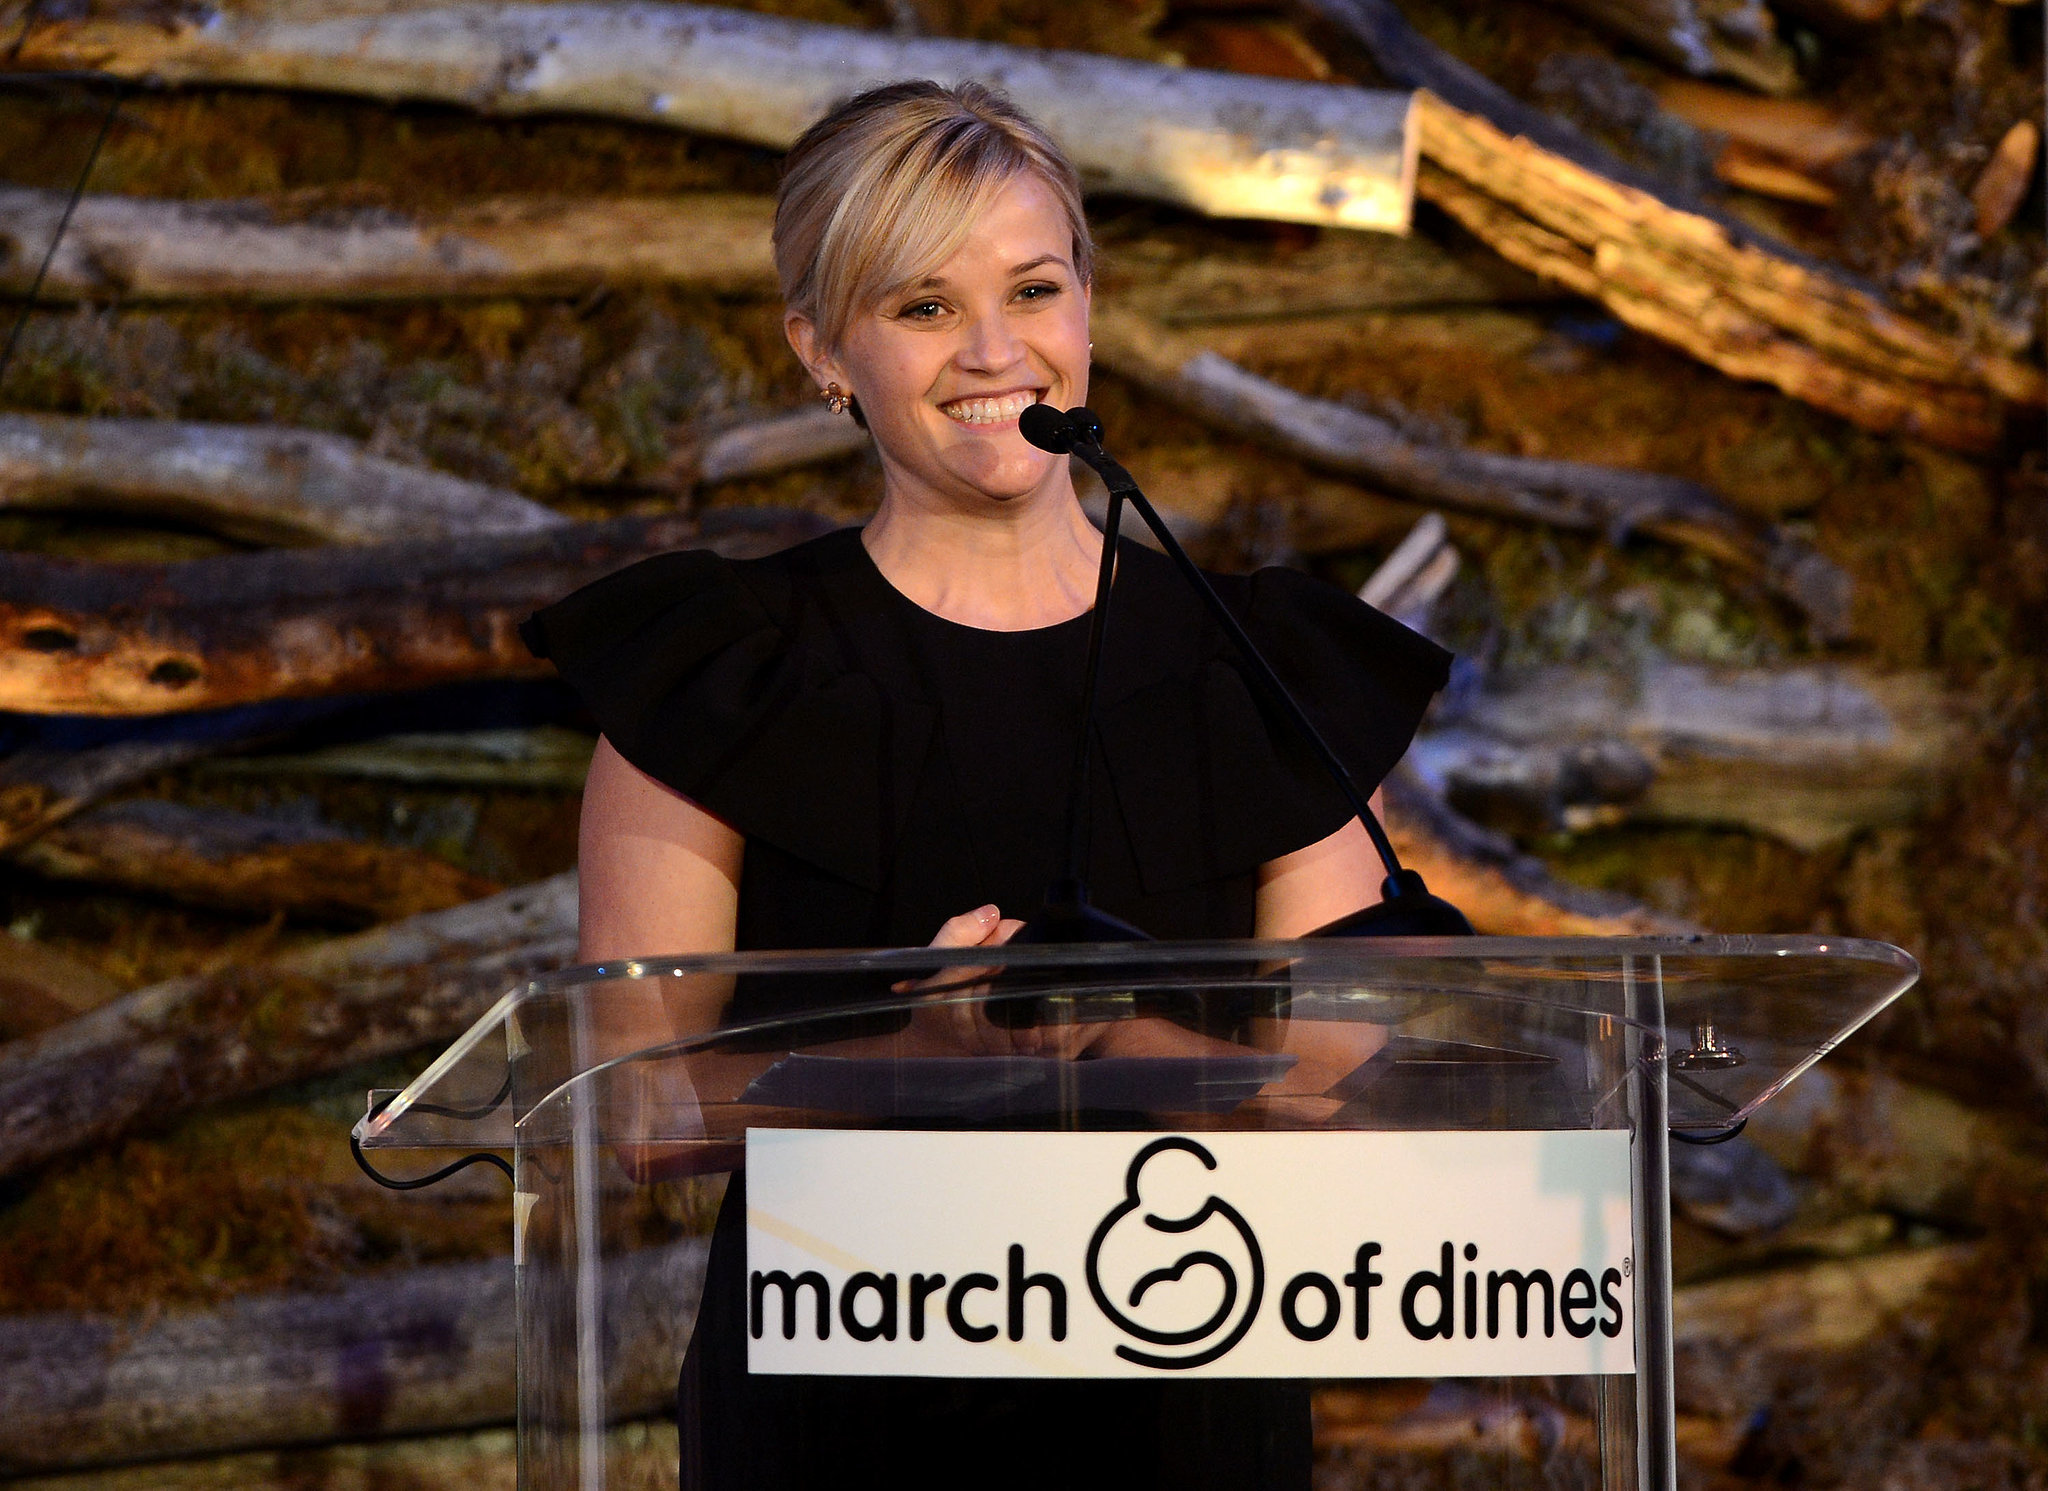 Reese took the stage at the March of Dimes ceremony that honored her in December 2012.